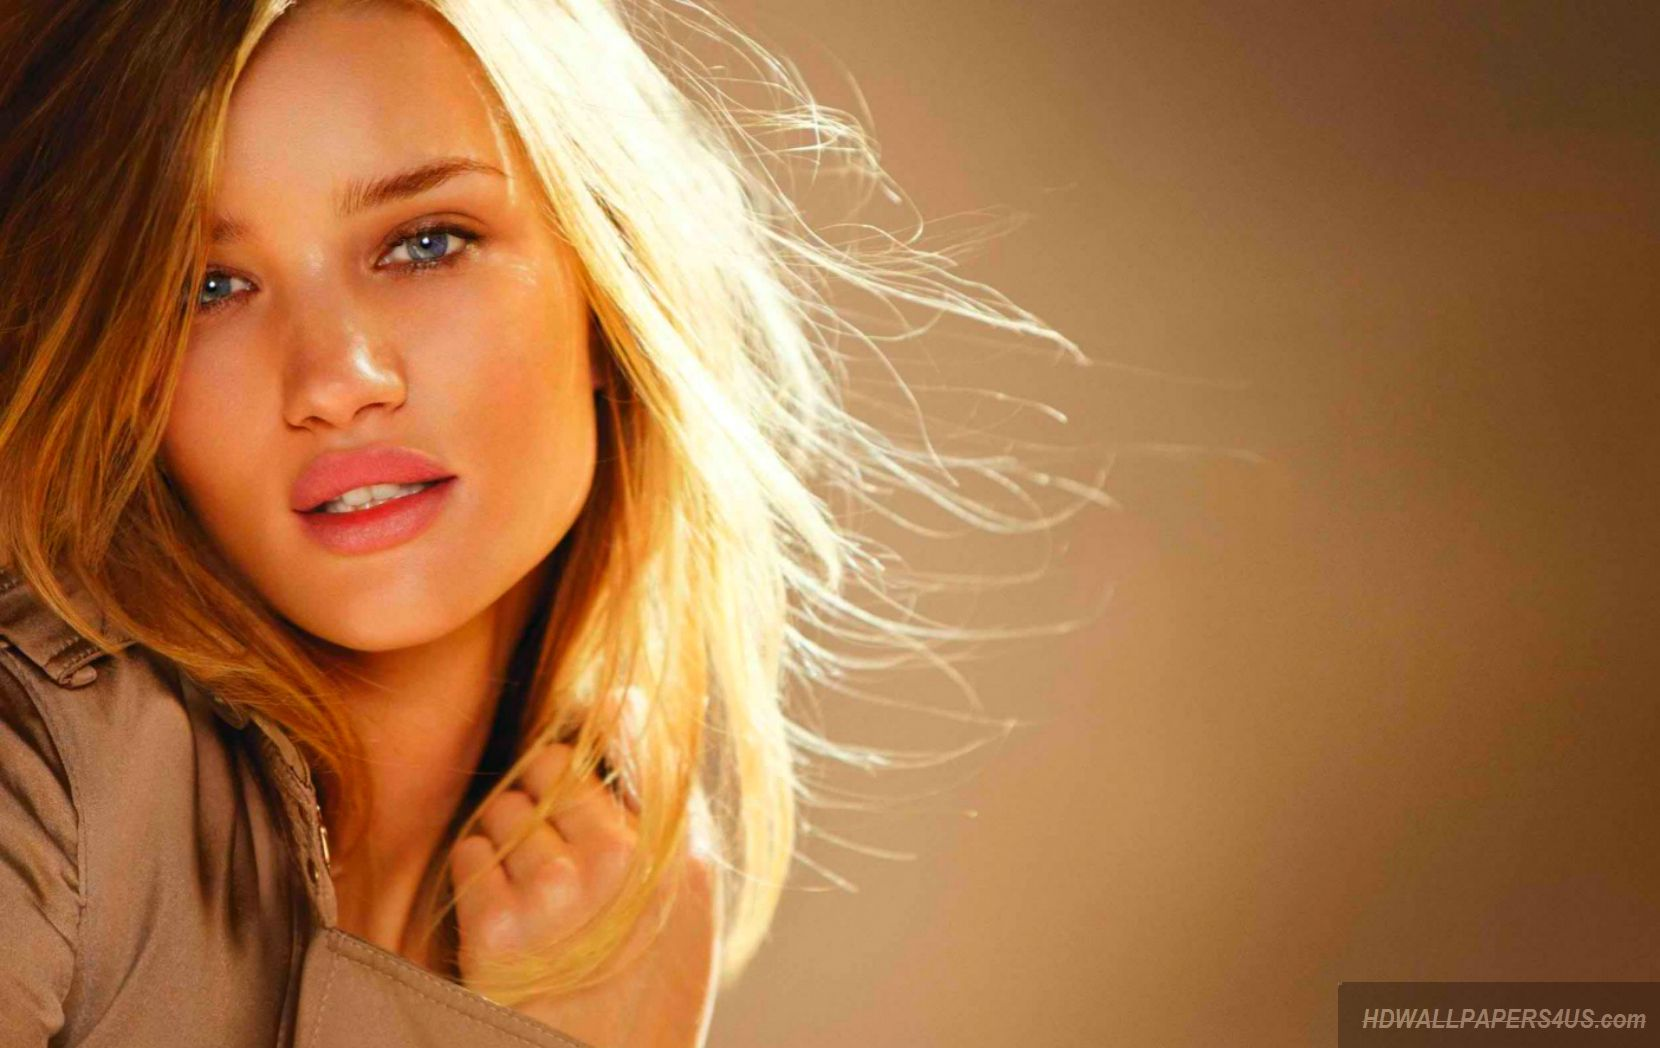 Rosie Huntington Whiteley Wallpapers Hd Hd Wallpapers 4 Us